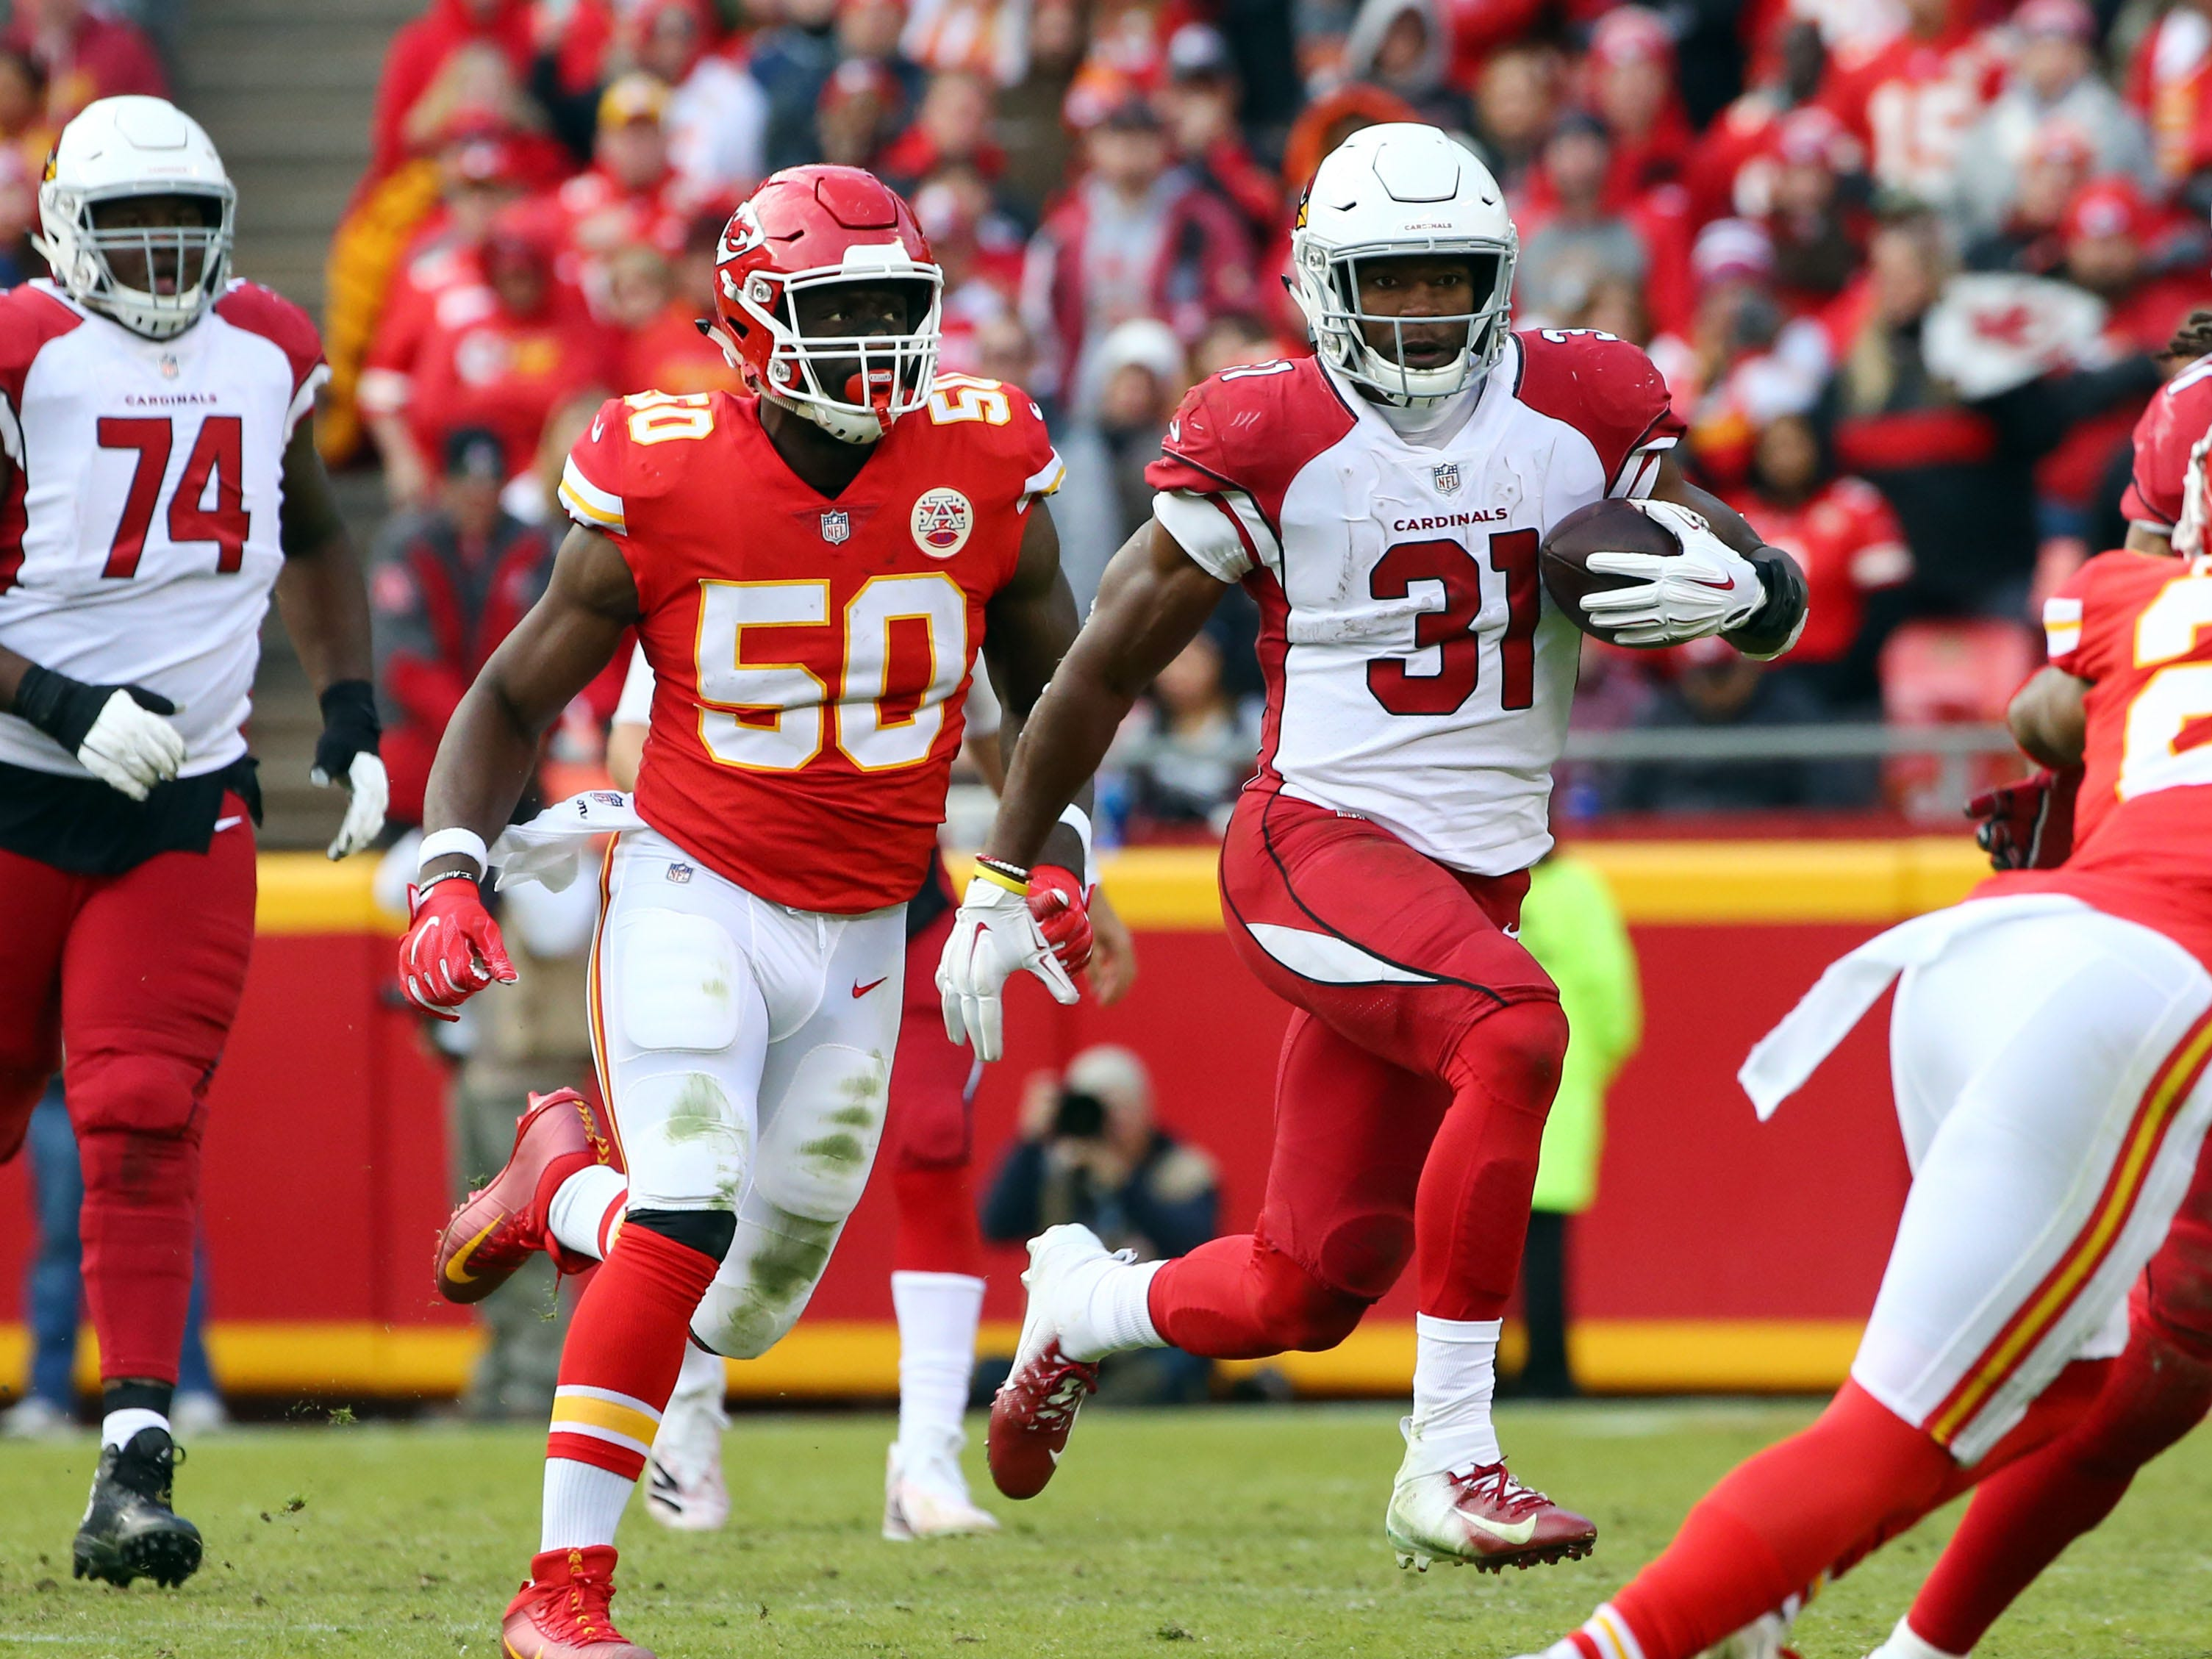 Nov 11, 2018; Kansas City, MO, USA; Arizona Cardinals running back David Johnson (31) runs past Kansas City Chiefs linebacker Justin Houston (50) in the second half at Arrowhead Stadium. Mandatory Credit: Jay Biggerstaff-USA TODAY Sports